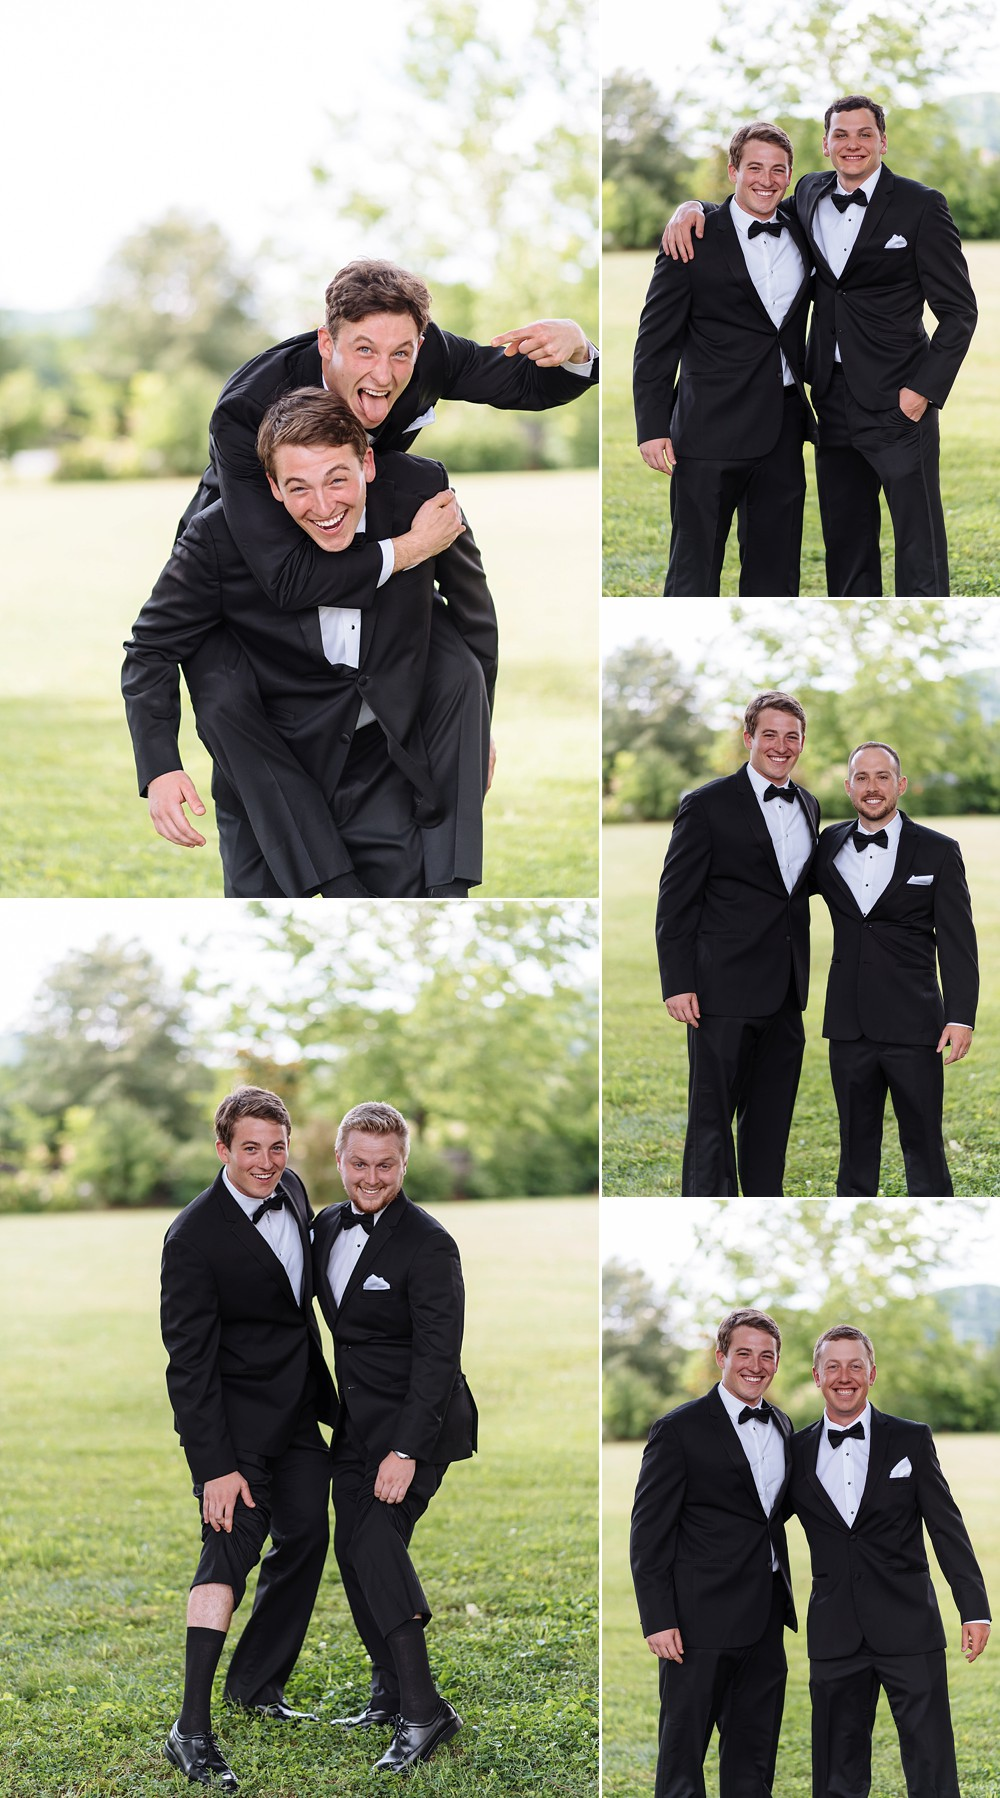 Groom with Groomsmen, goofing off having fun outdoors.